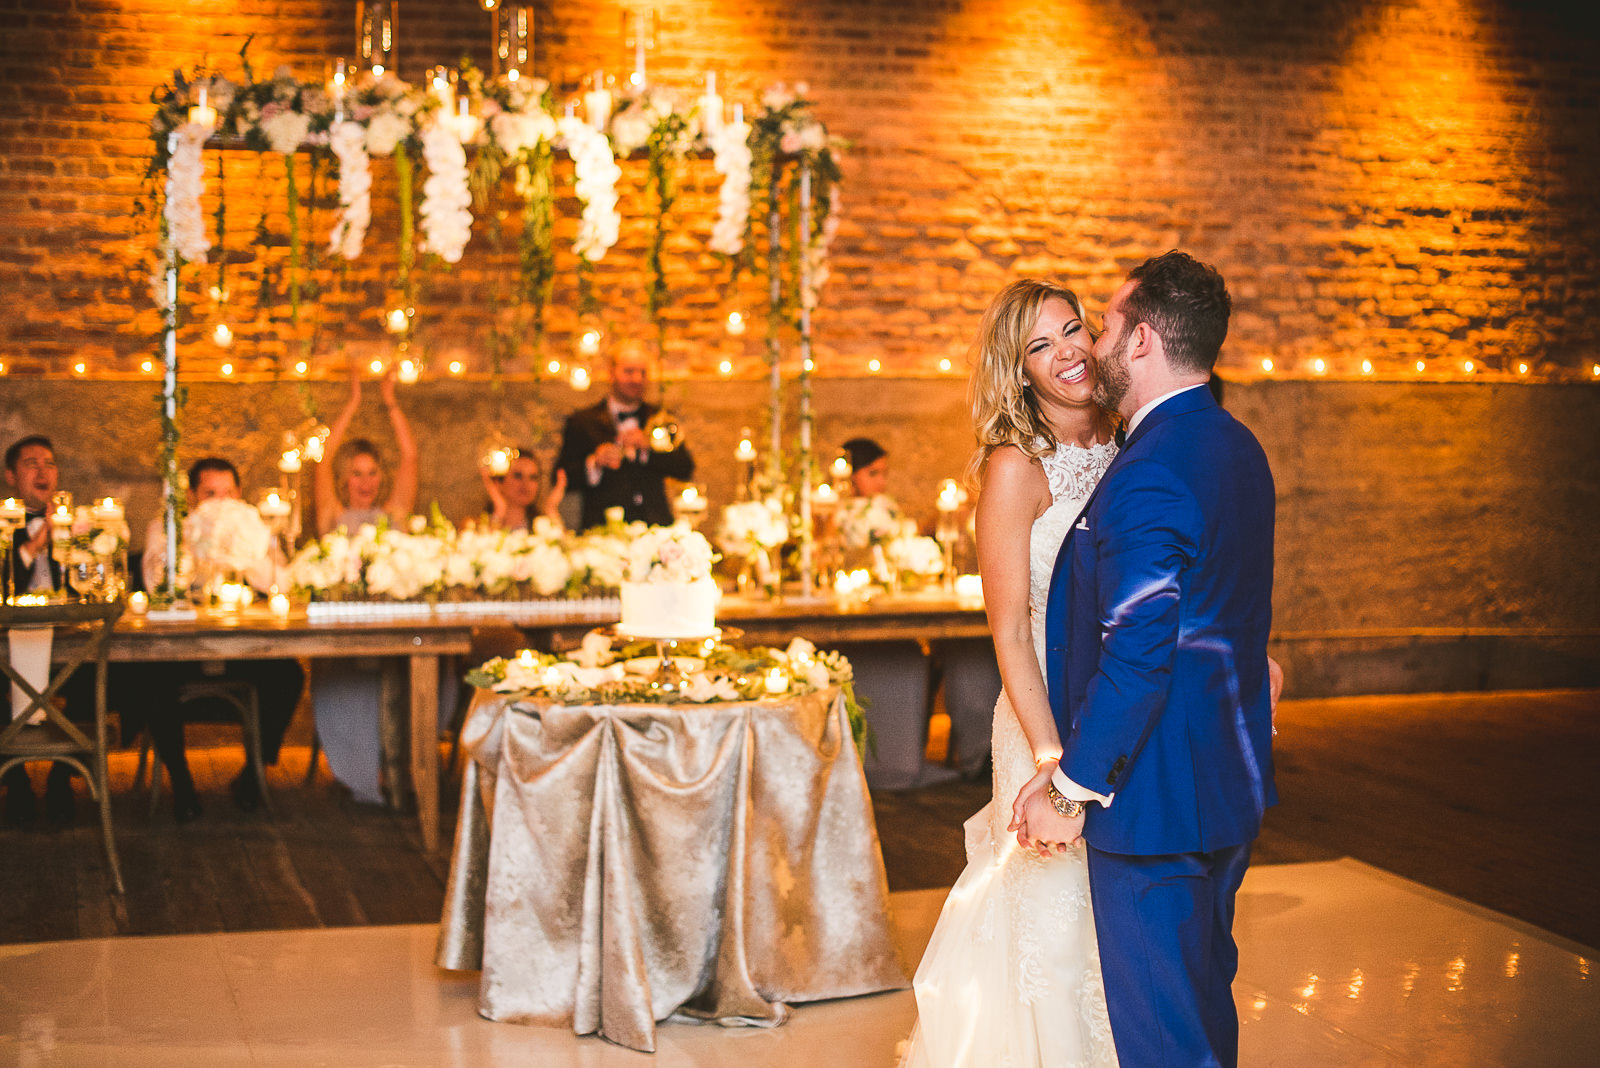 60 first dance at wedding - Chicago Wedding Photography at Gallery 1028 // Courtnie + David